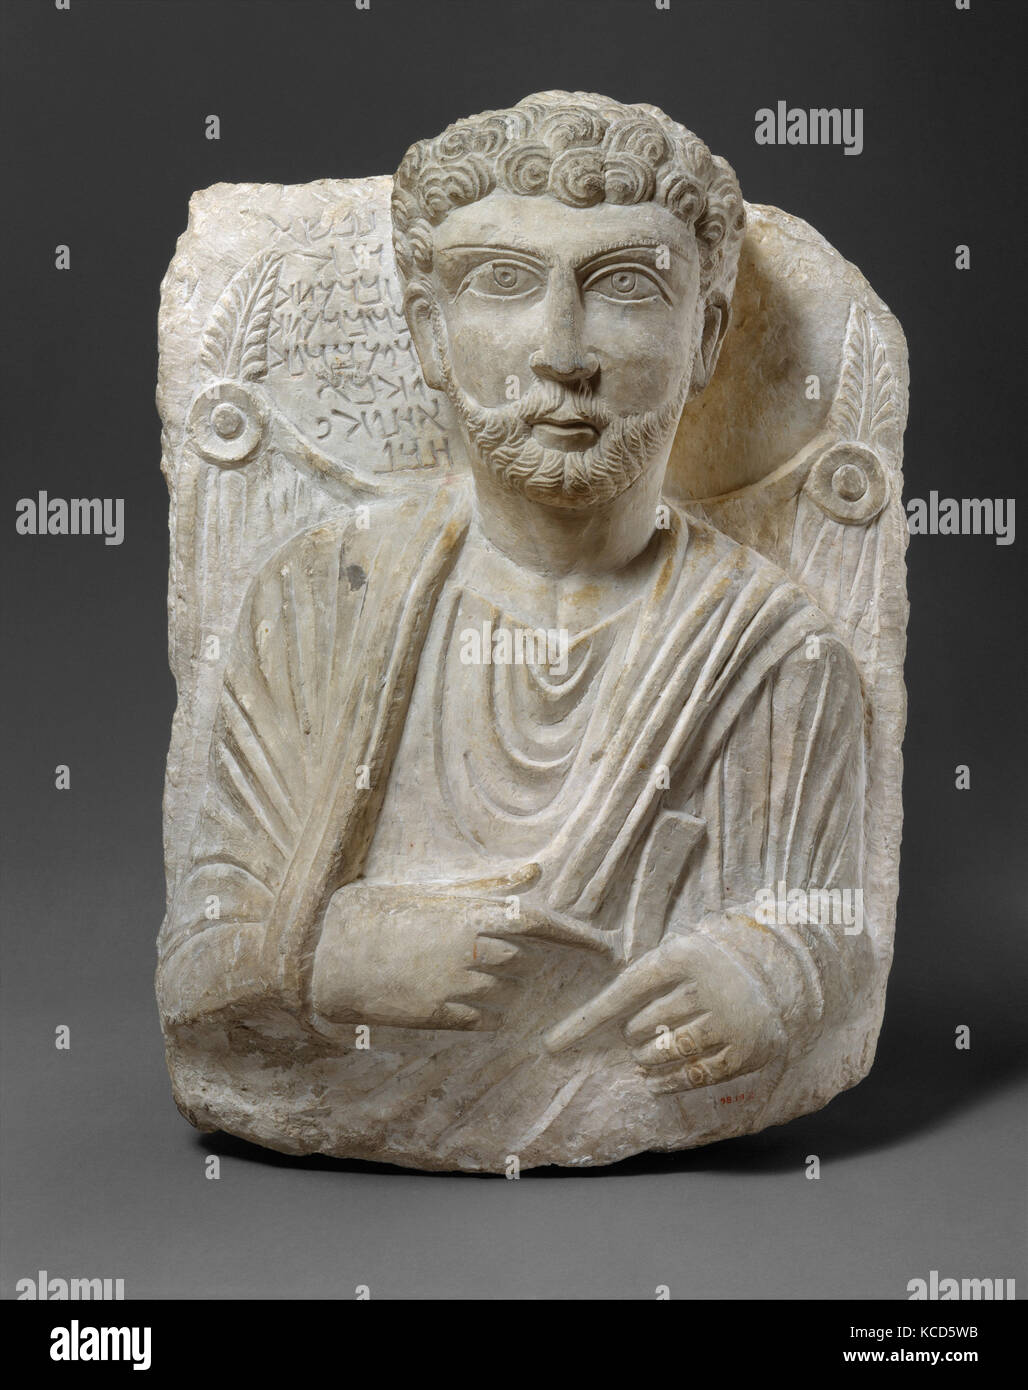 Funerary relief, ca. 150–200, Syria, probably from Palmyra, Limestone, 20 5/8 × 15 1/8 × 7 5/8 in., 98 - Stock Image